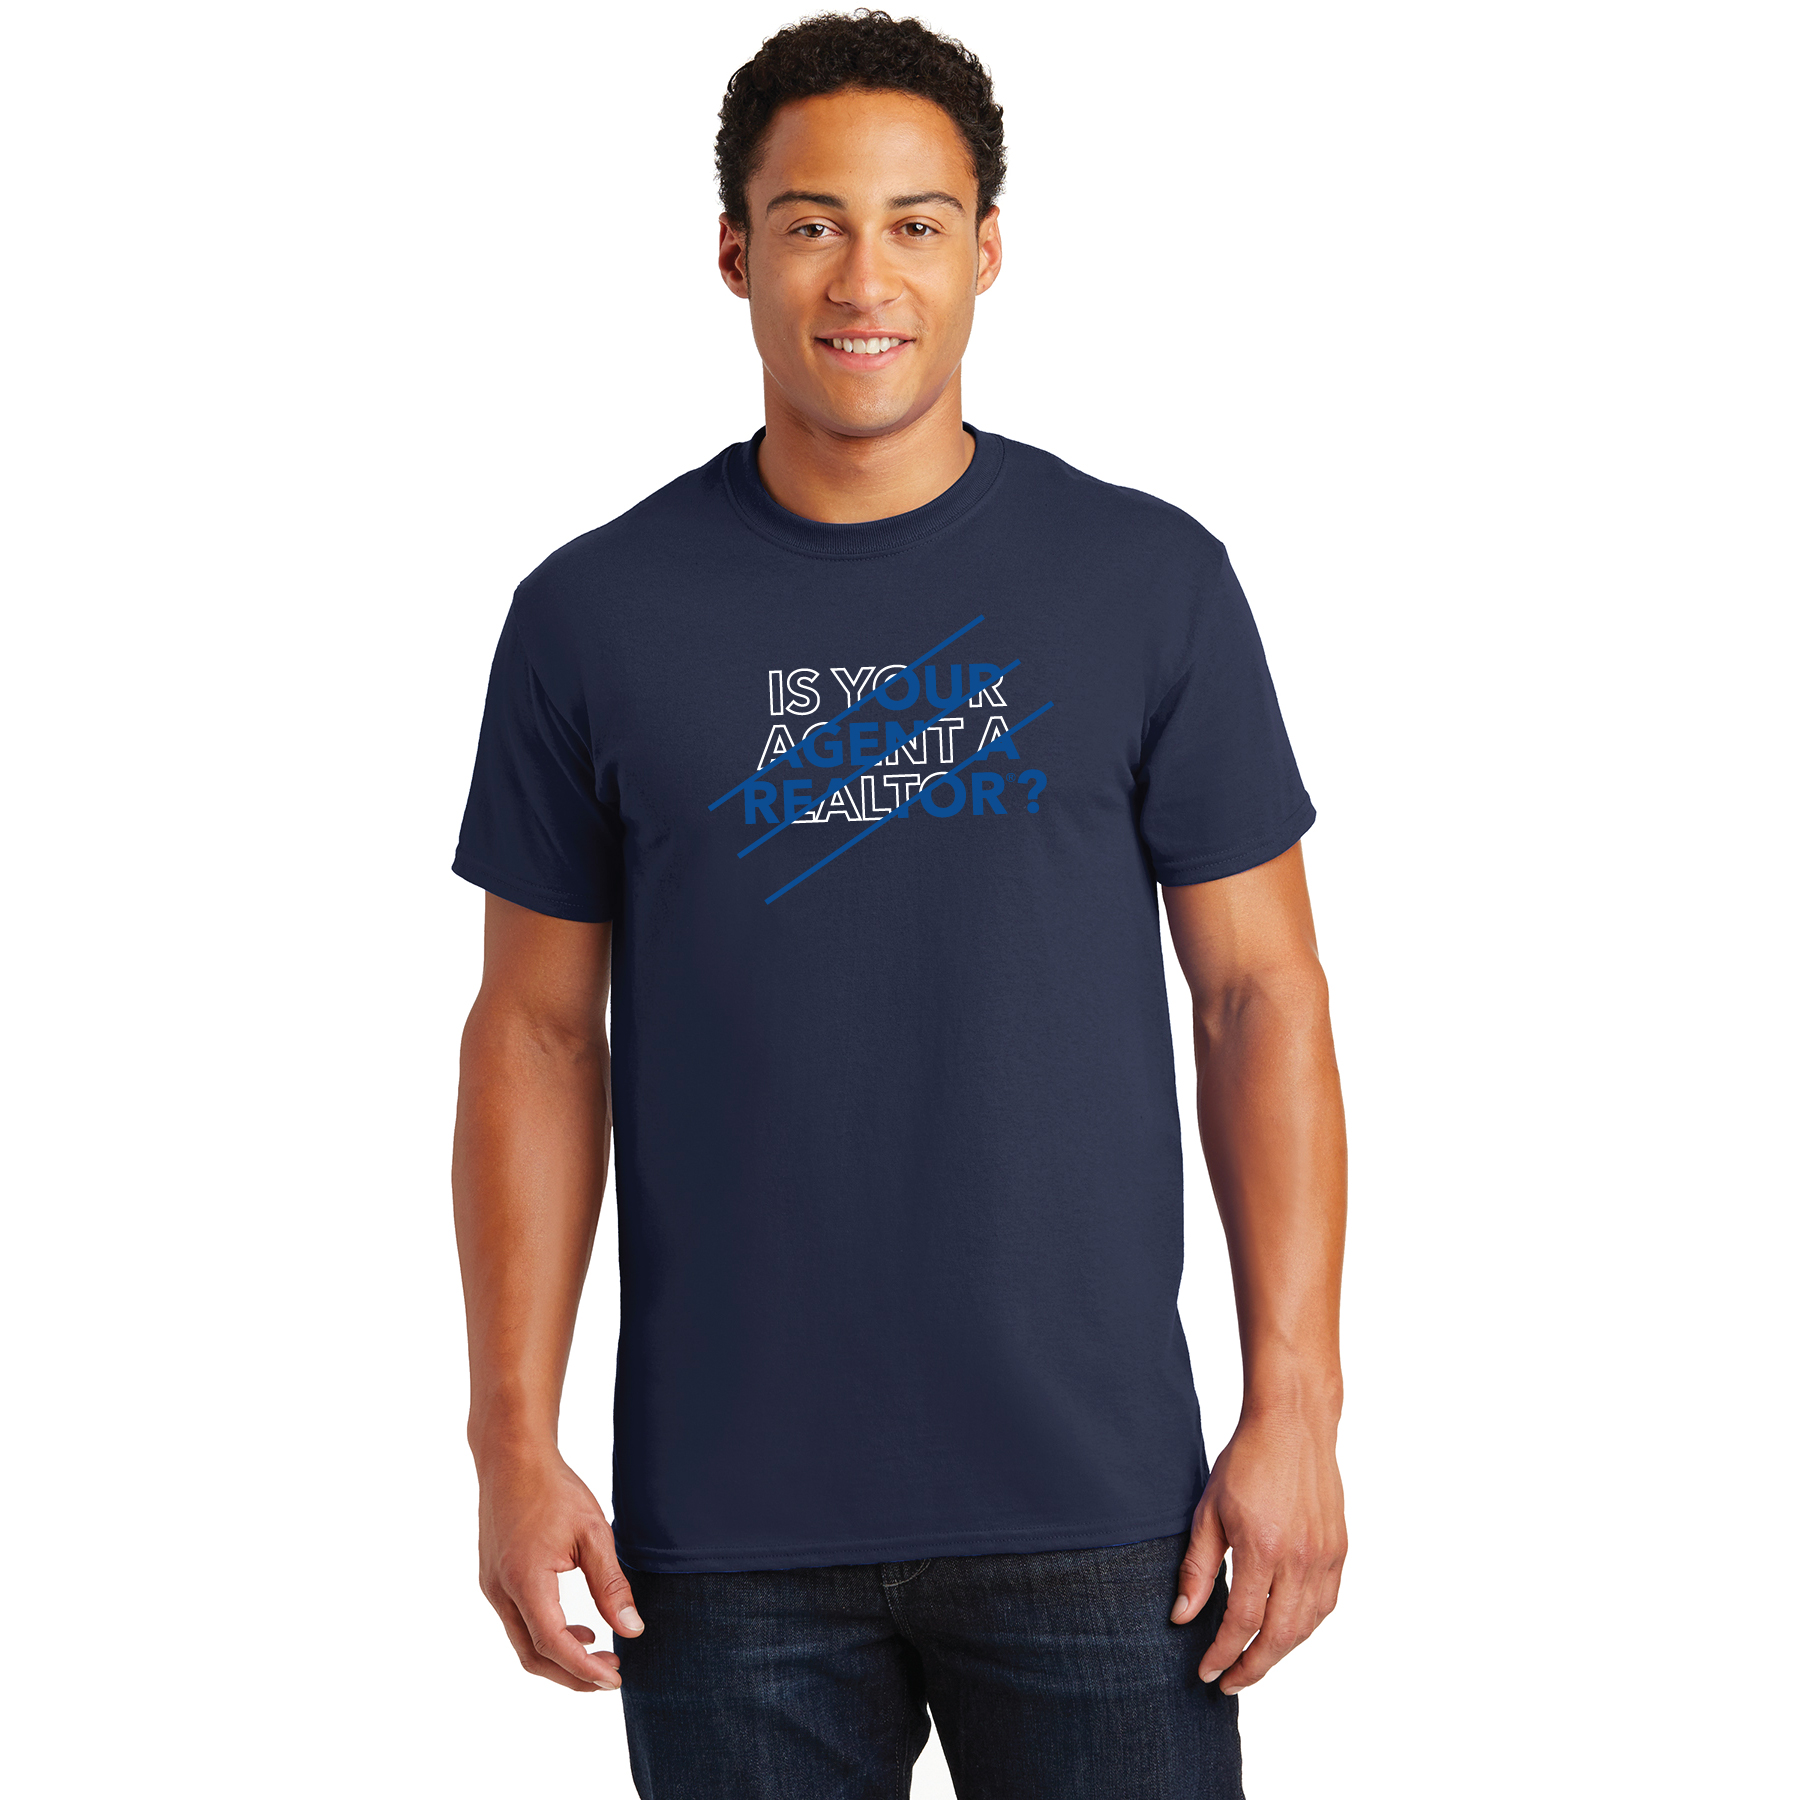 Is Your Agent a REALTOR® Navy Blue Tee Shirt TRSFR,twwr,ThatsWhoWeR,Thats,TWWR,ThatWho,ThatsWho,Twwr,Thats,Whos,We,Ares,Tees,T-shirt,Tee,Casual,Values,Tees,NewEra,Longs,Sleeves